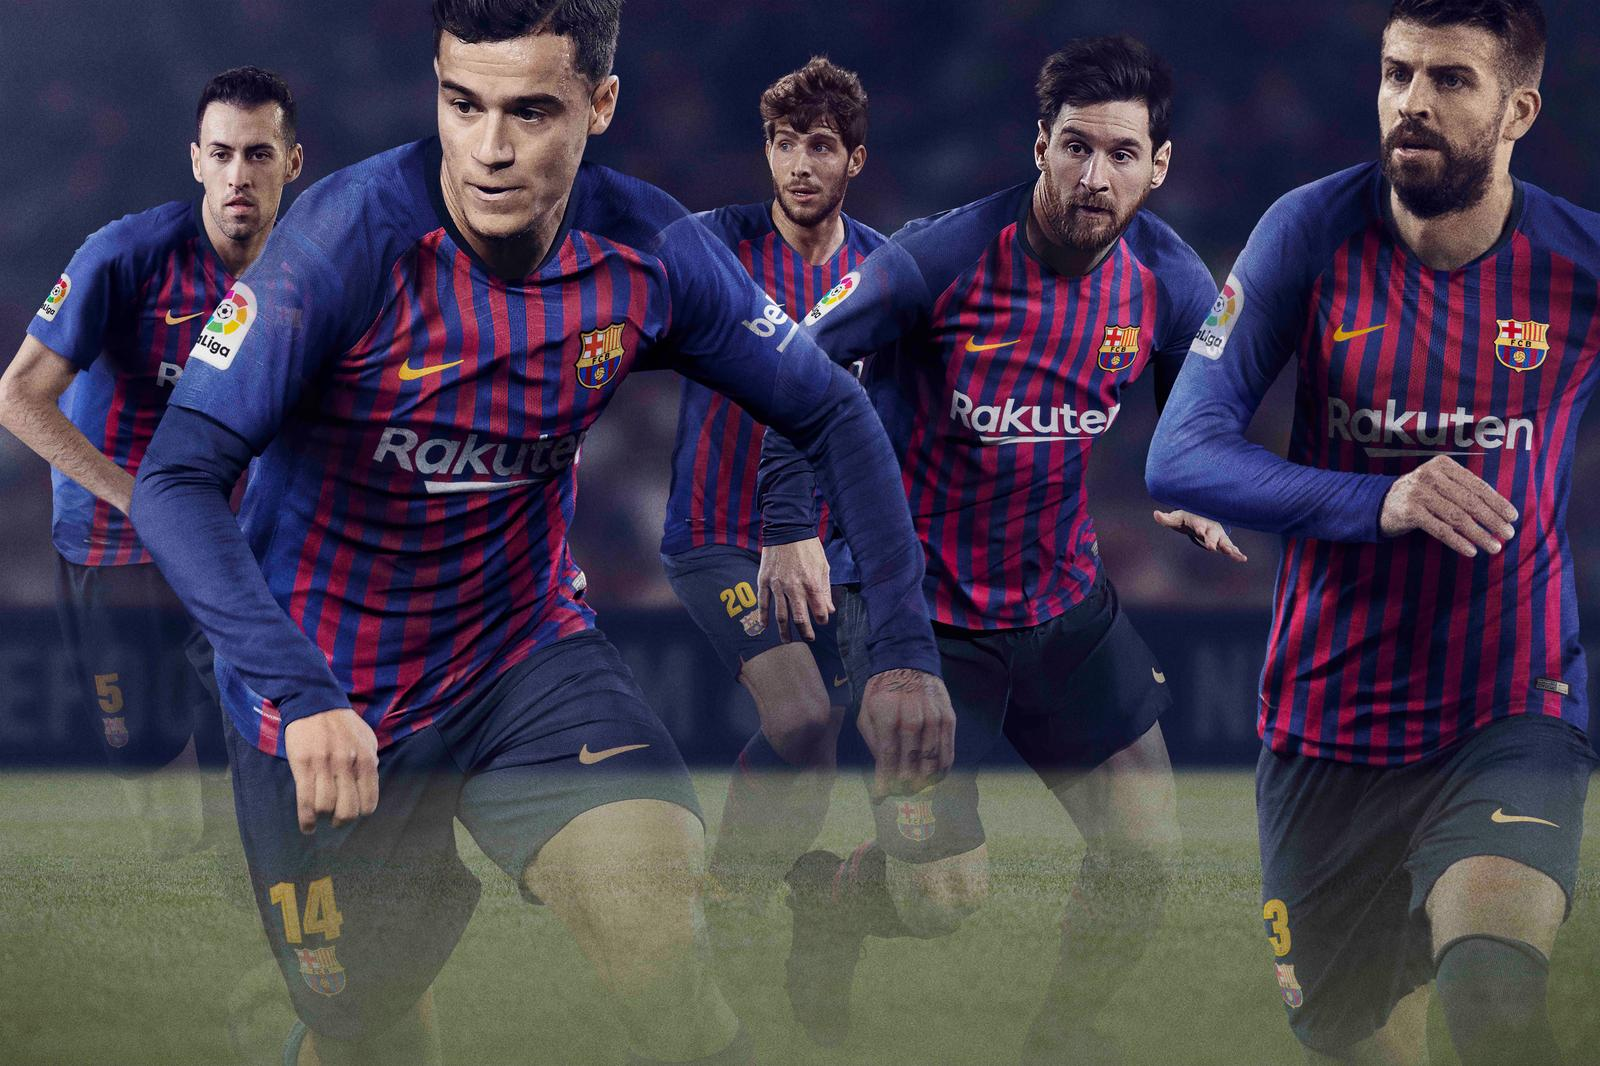 barcelona-18-19-home-kit-1.jpg